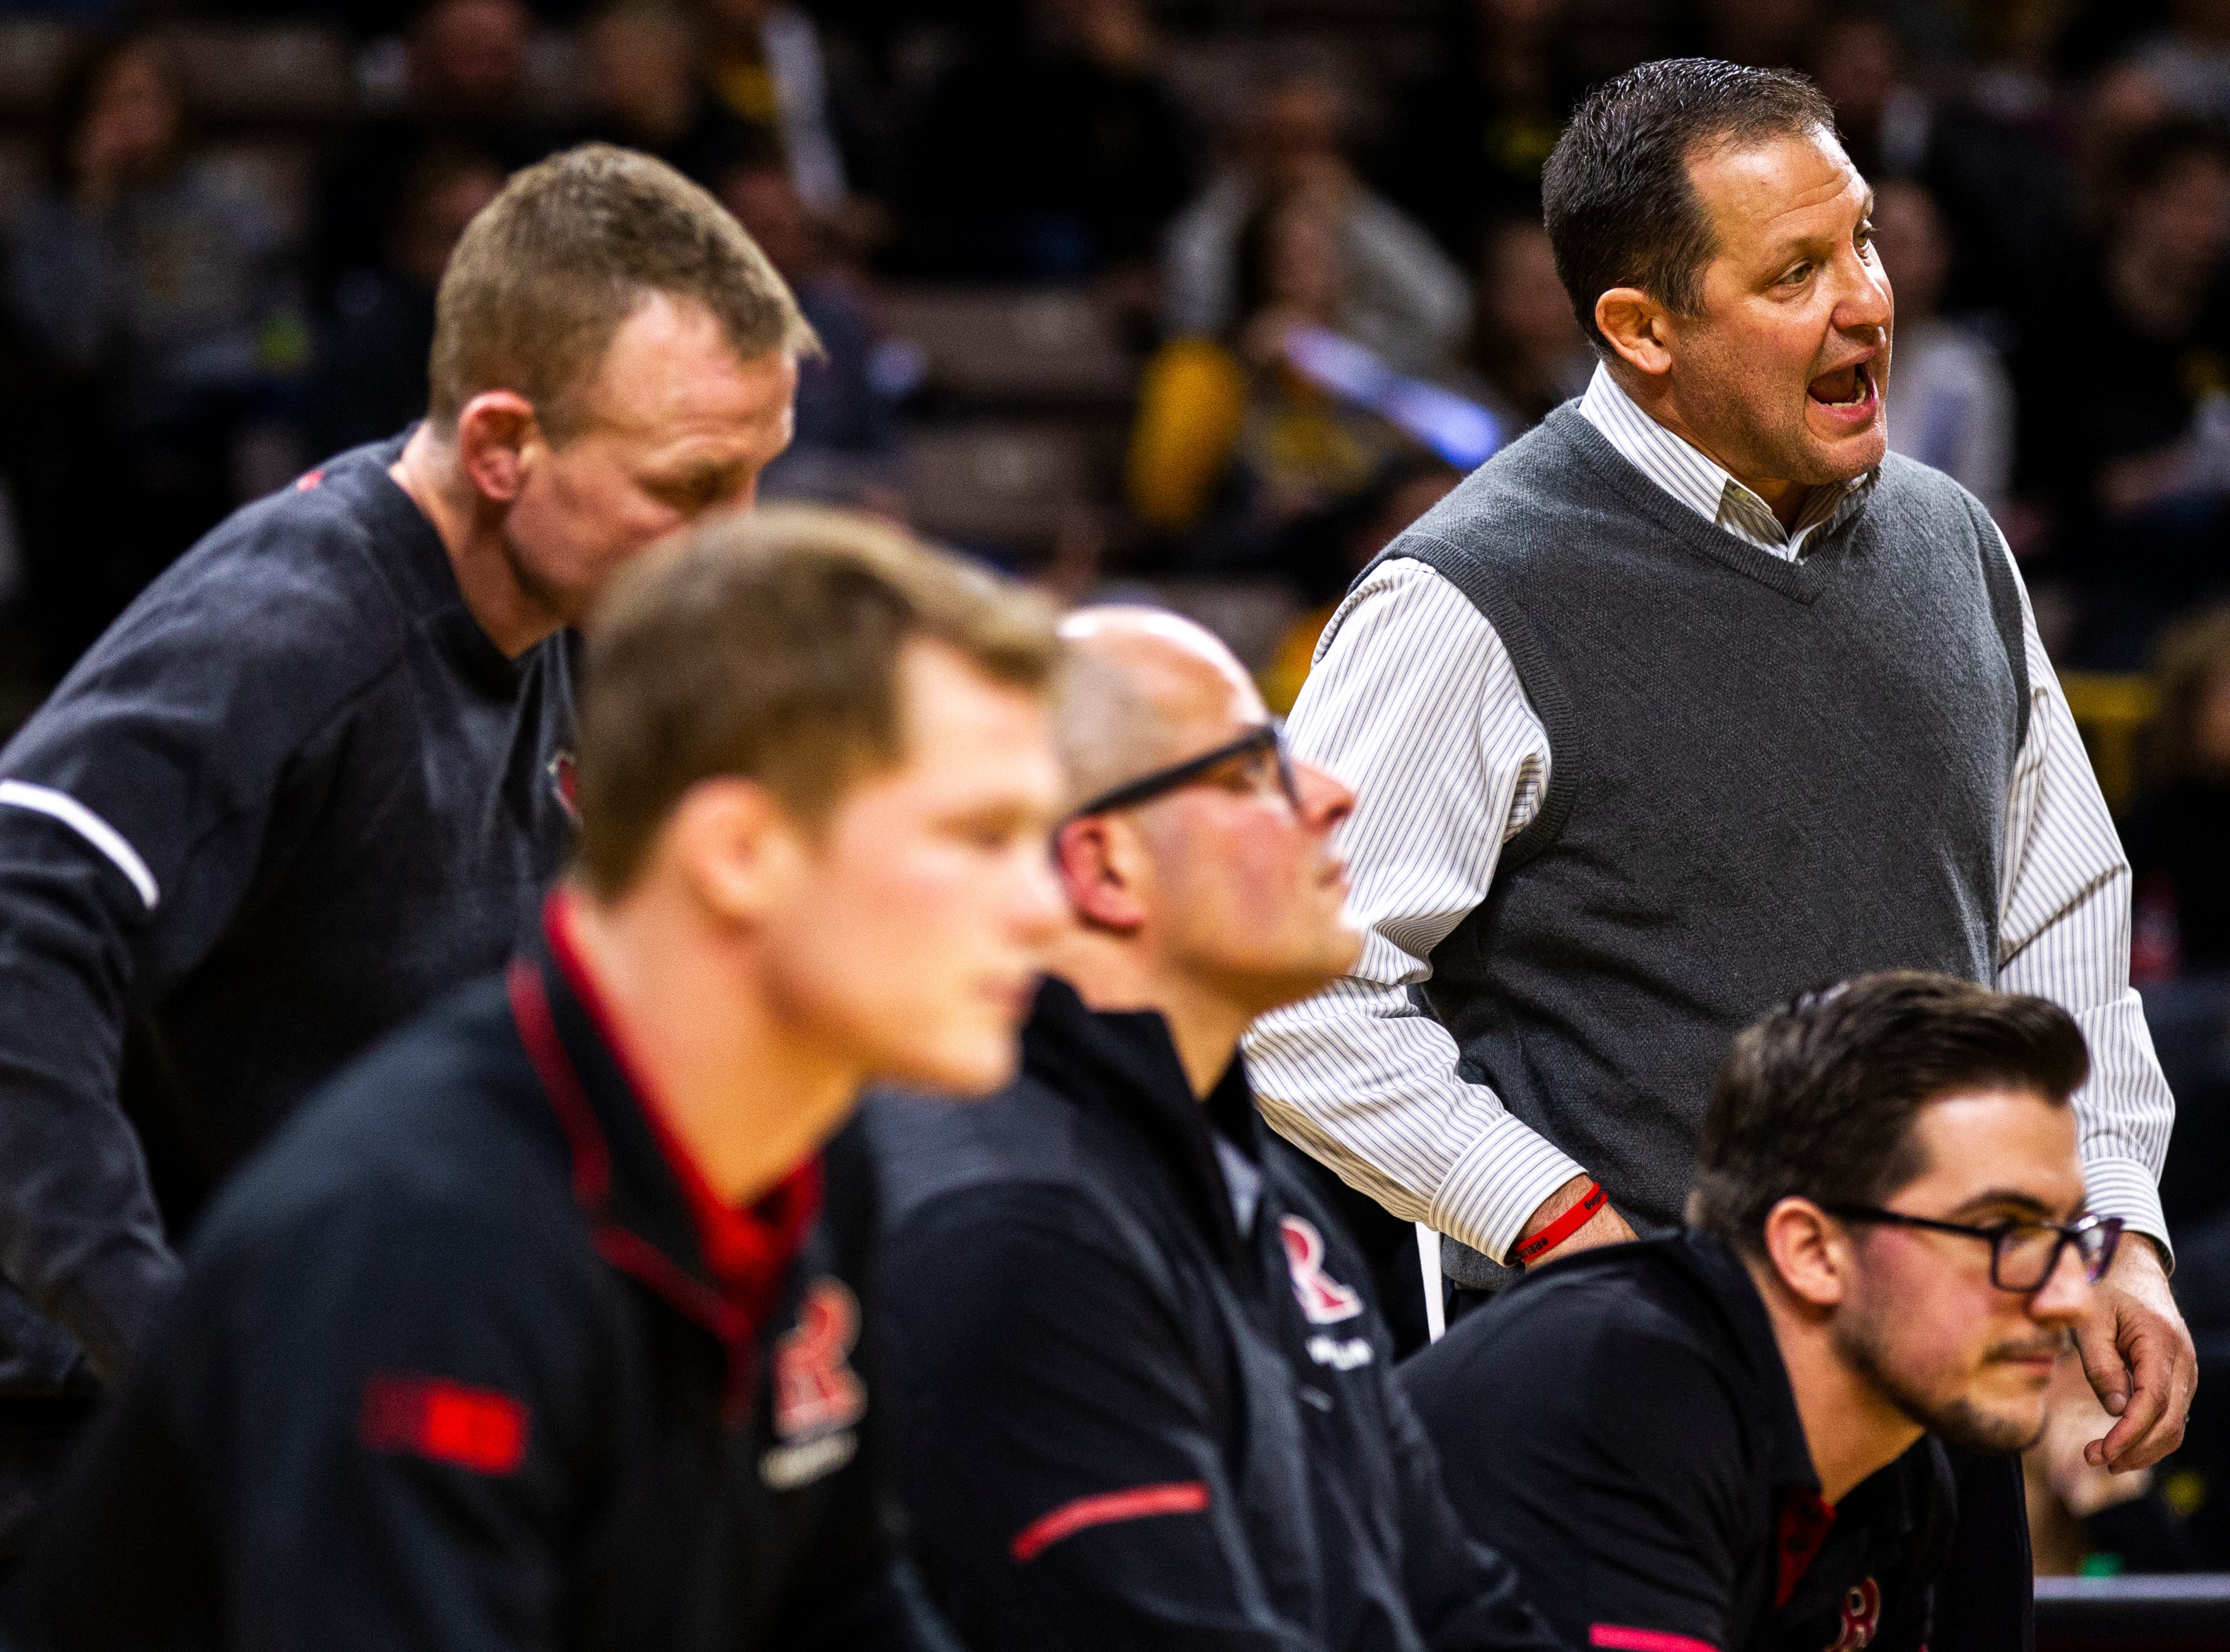 Rutgers head coach Scott Goodale, far right, calls out during a NCAA Big Ten Conference wrestling dual on Friday, Jan. 18, 2019, at Carver-Hawkeye Arena in Iowa City, Iowa.